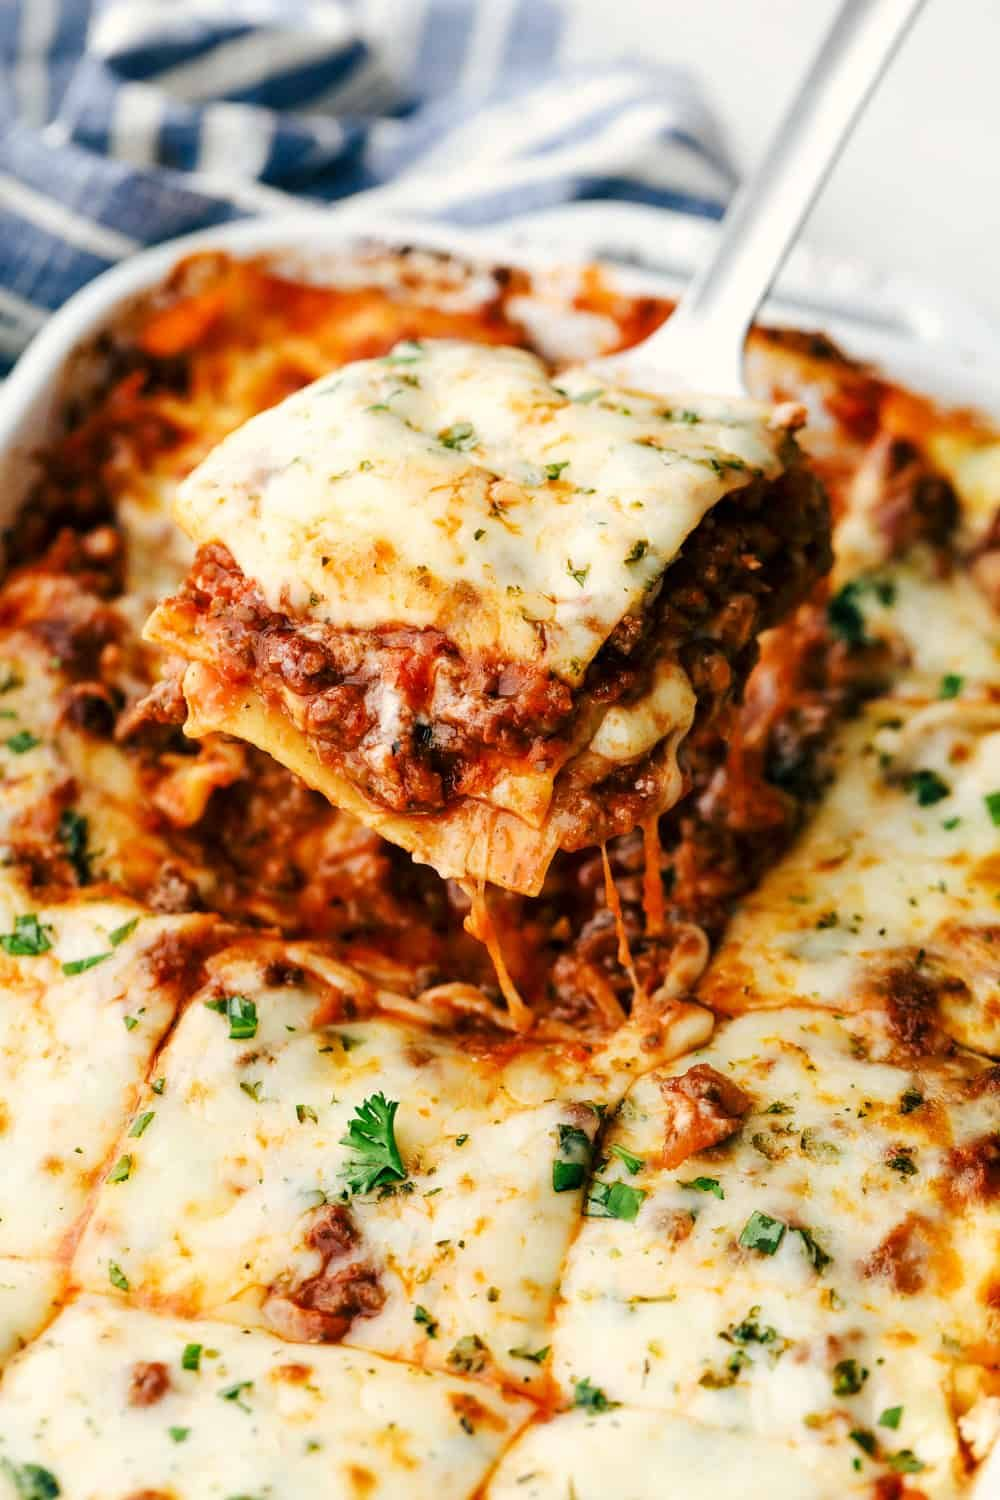 The Best Classic Lasagna Ever Has Layers Of Sauteed Ground Beef And Italian Sausage That In 2020 Best Lasagna Recipe Classic Lasagna Recipe Lasagna Recipe With Ricotta